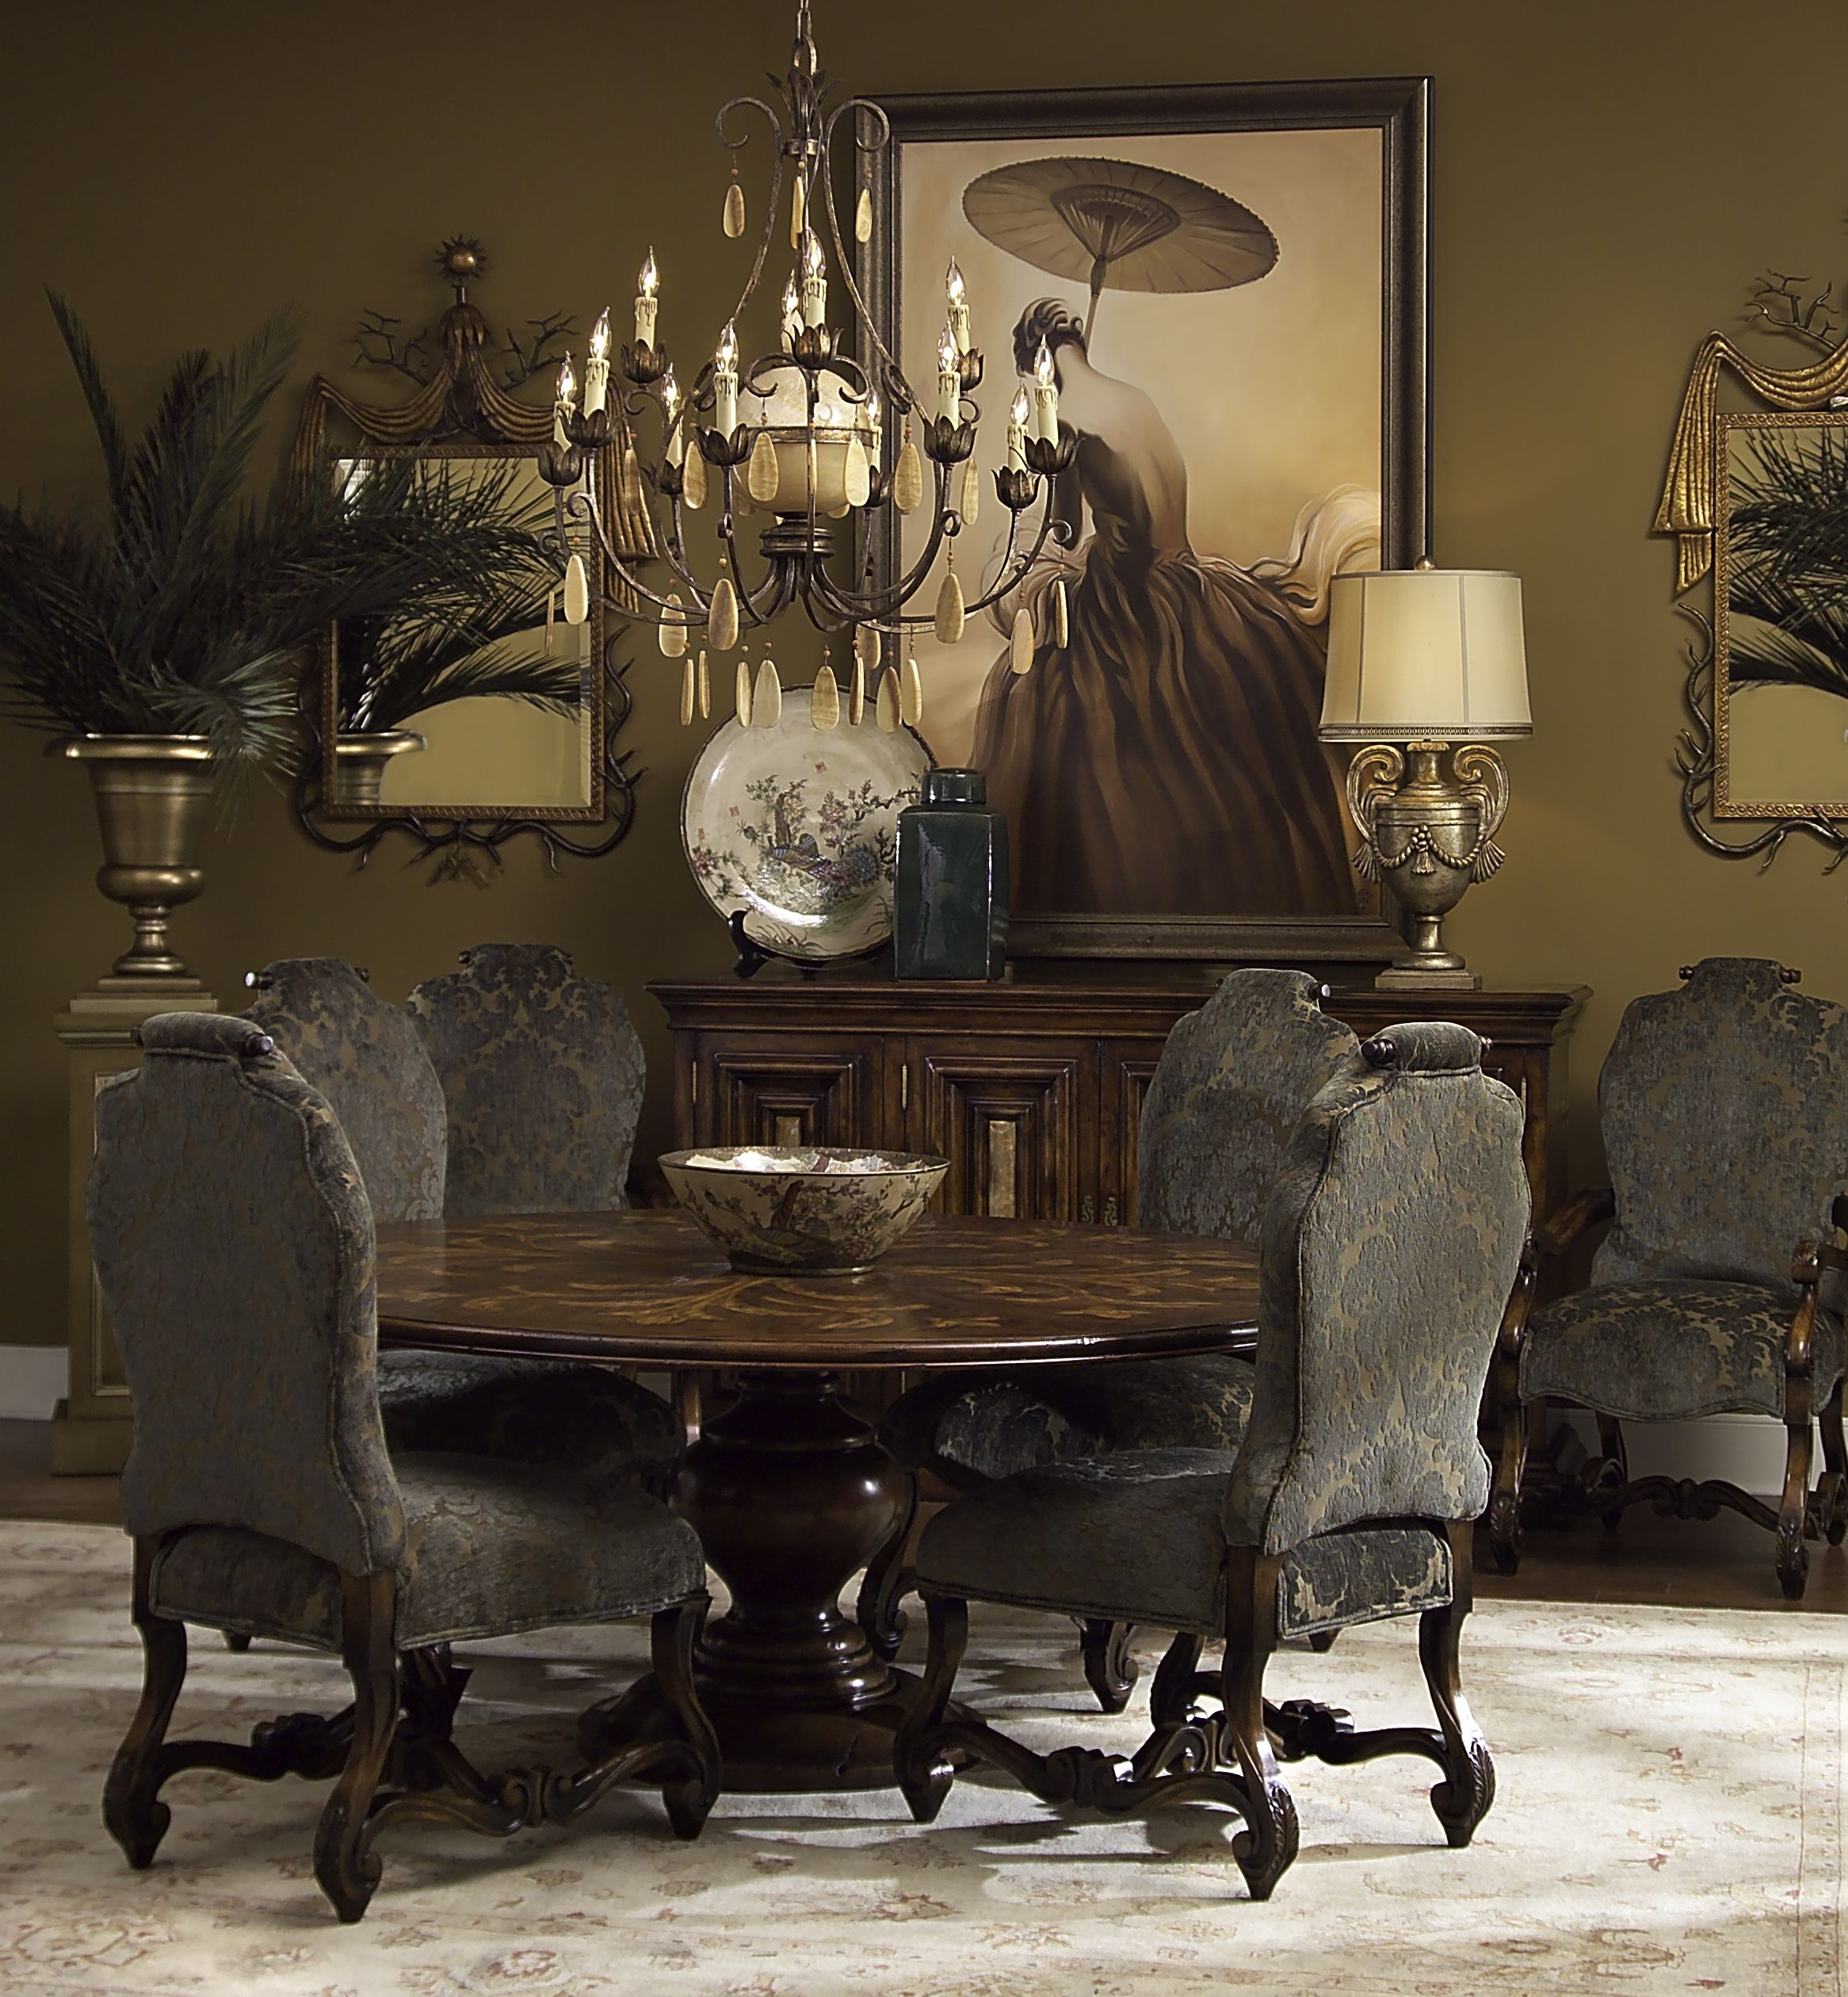 Dining Room Ideas Blog Tuscan Decorating Ideas Blog Tuscan Dining Table Decor